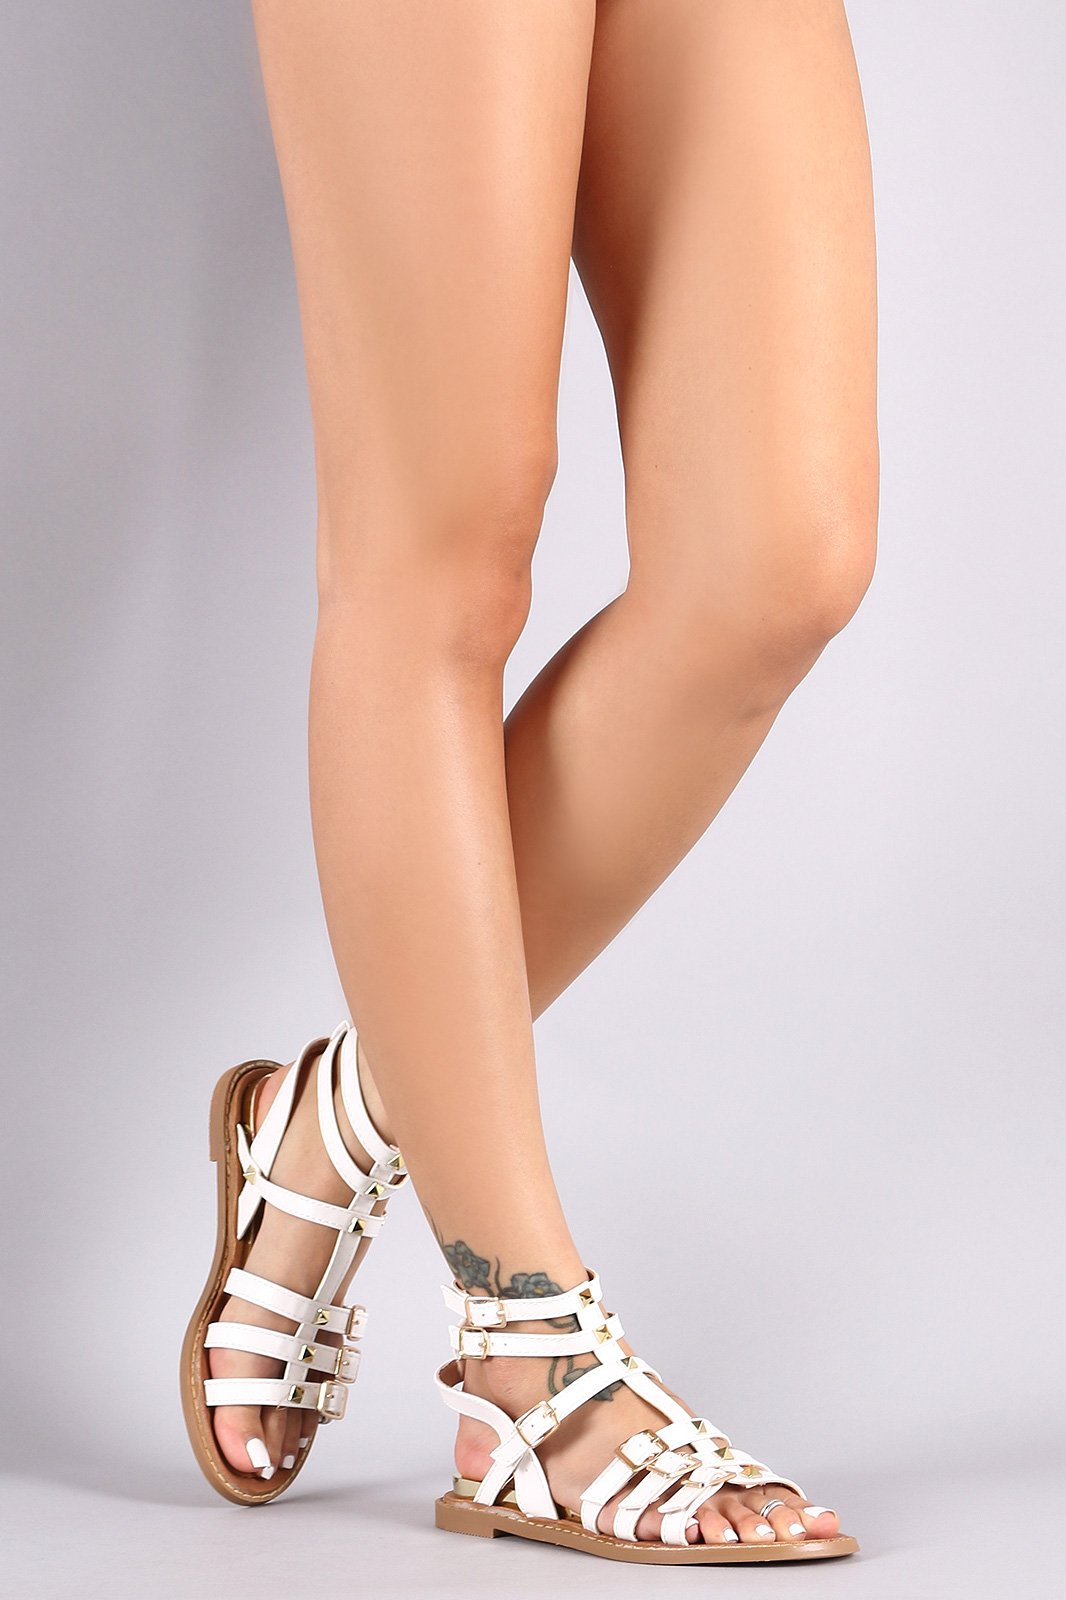 71f86c6c2238 These gladiator sandals features a smooth vegan leather material